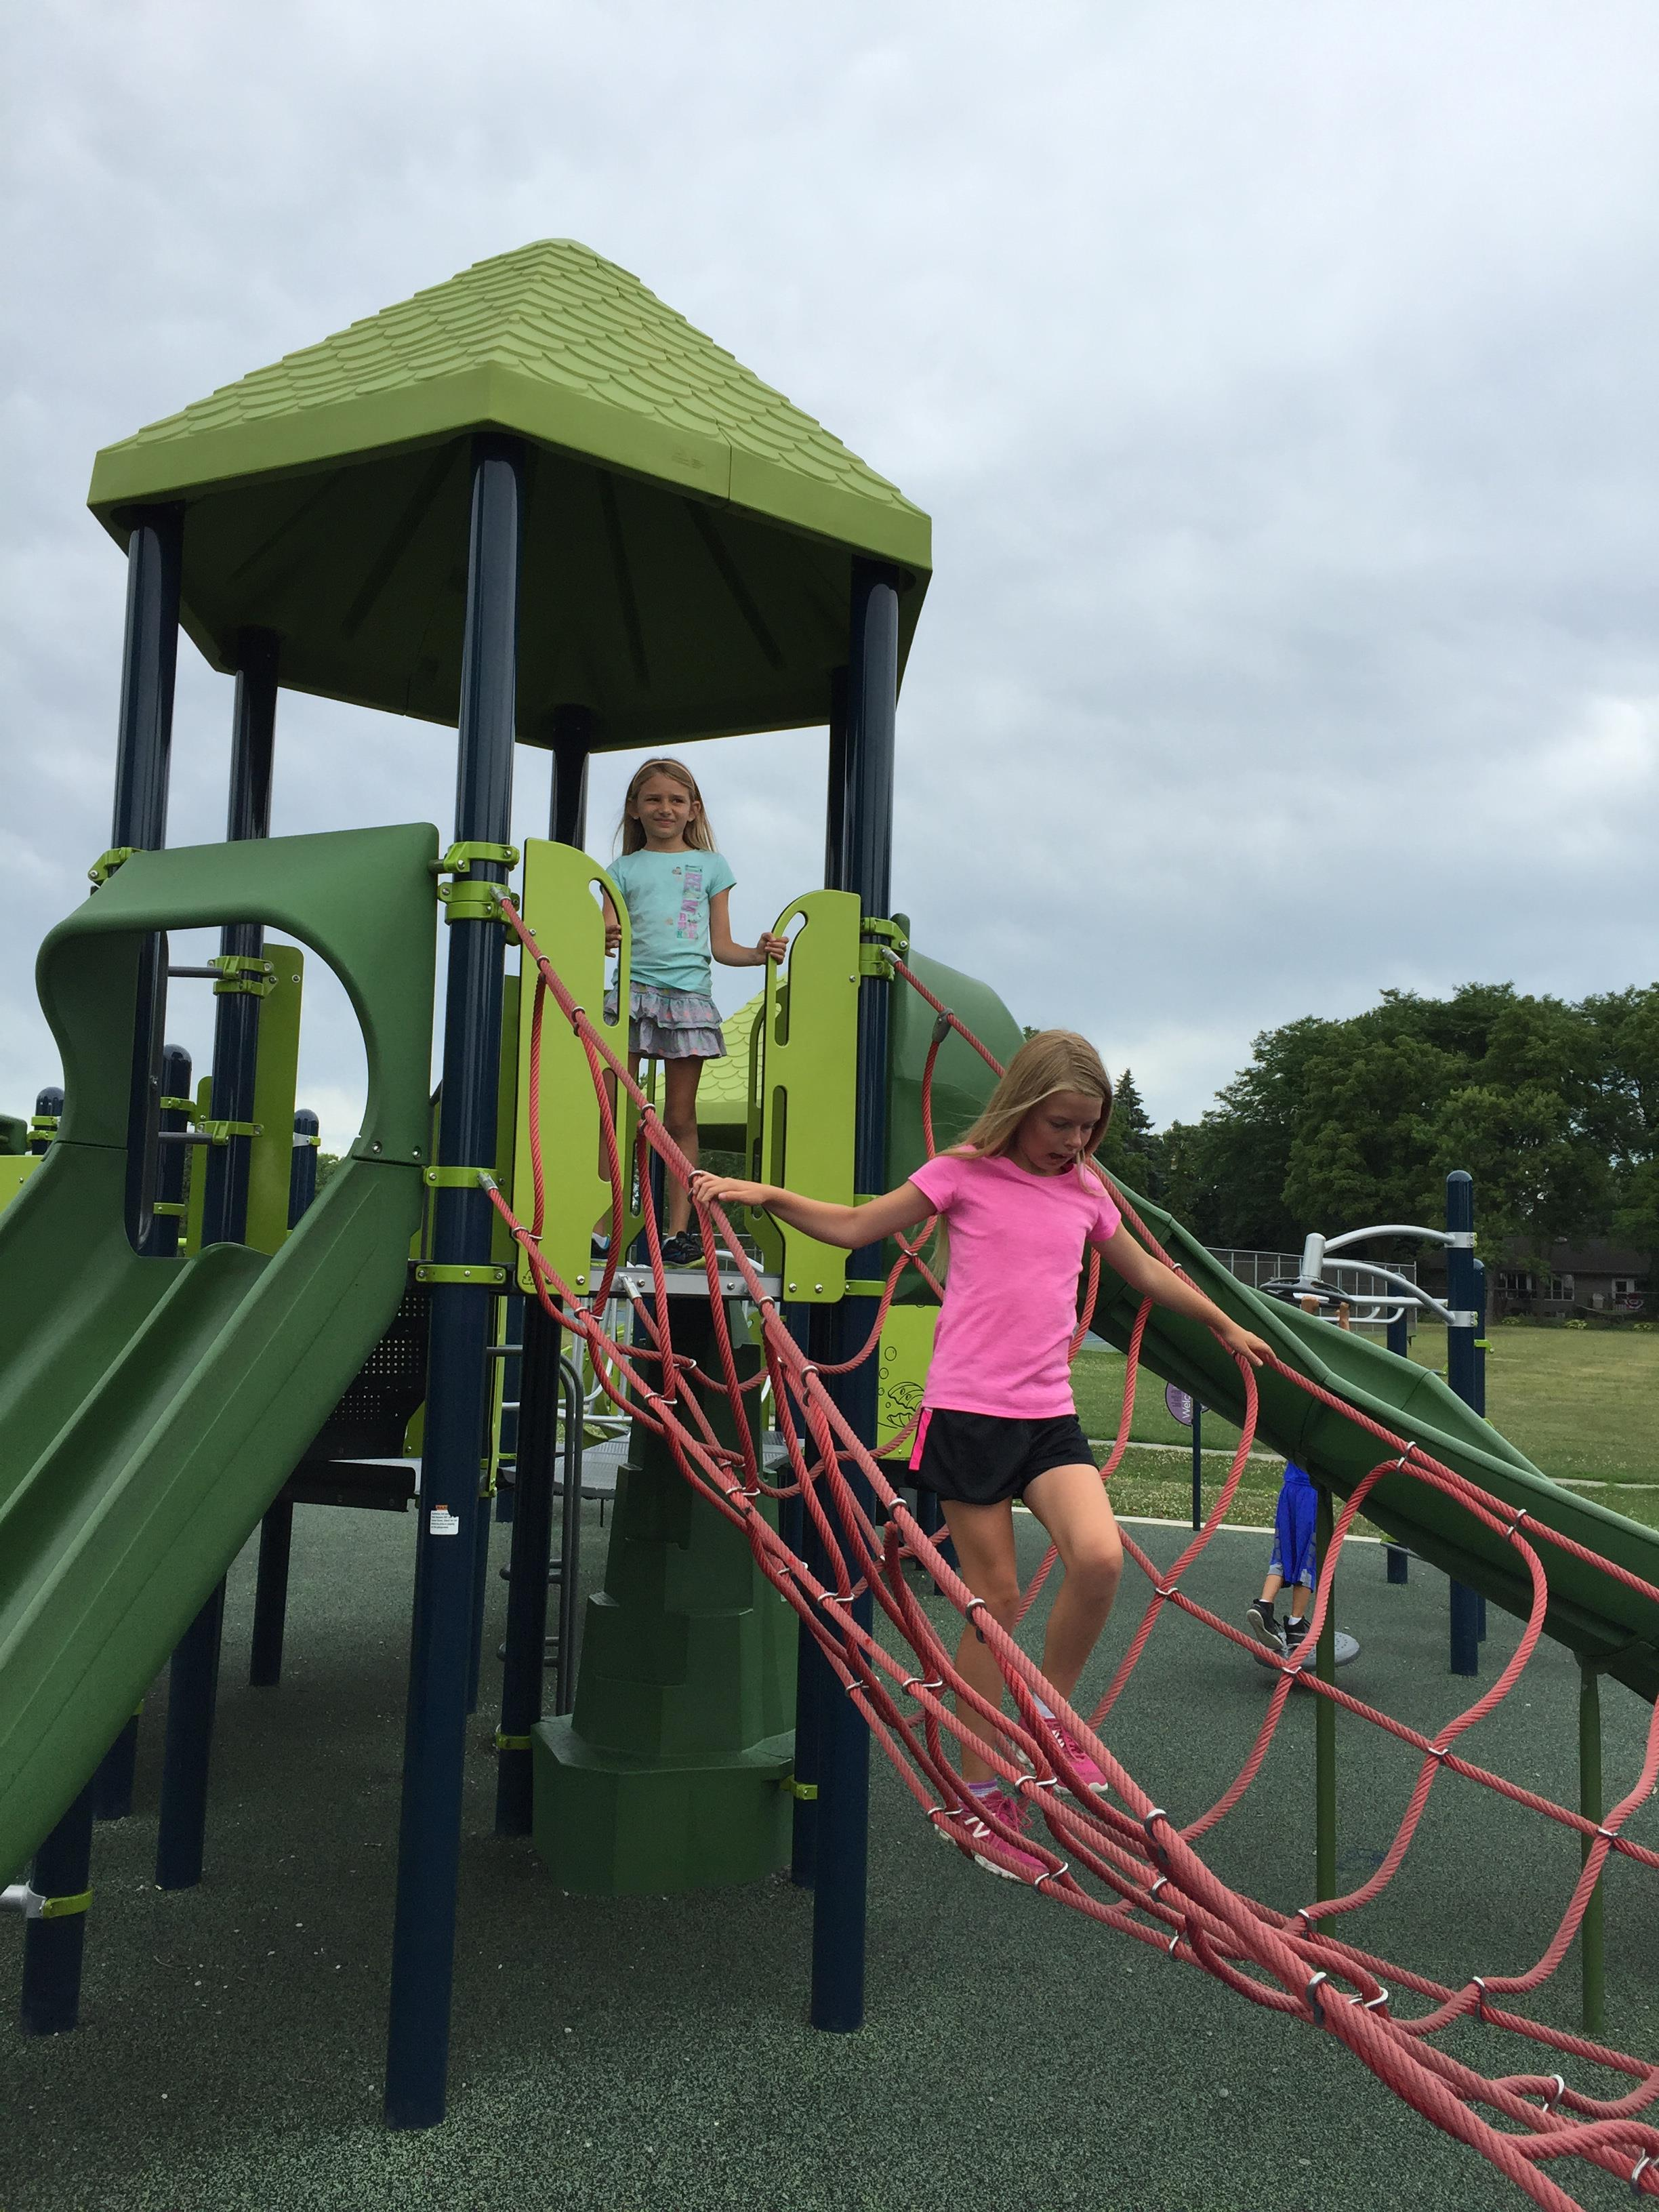 July 13, 2016 Summer Park Play Date